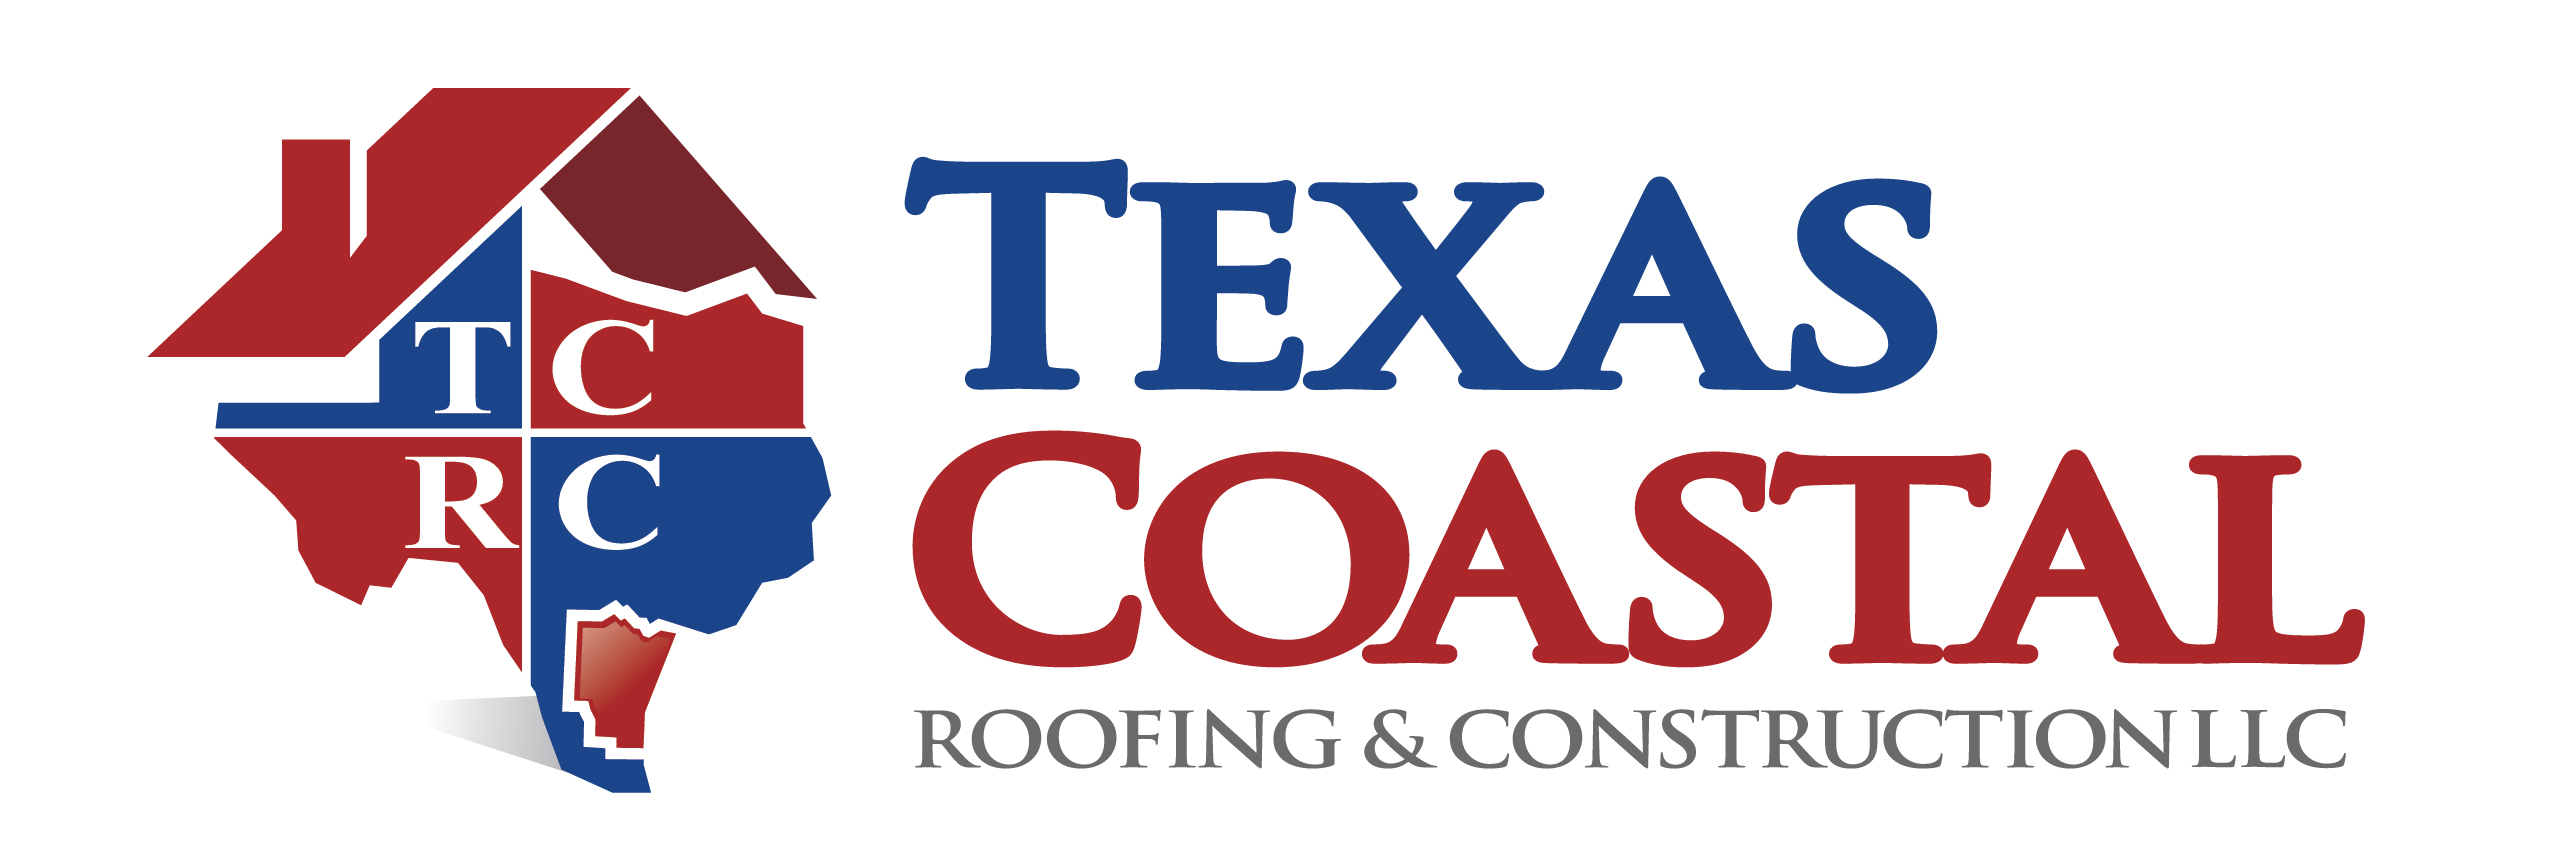 Texas Coastal Roofing & Construction